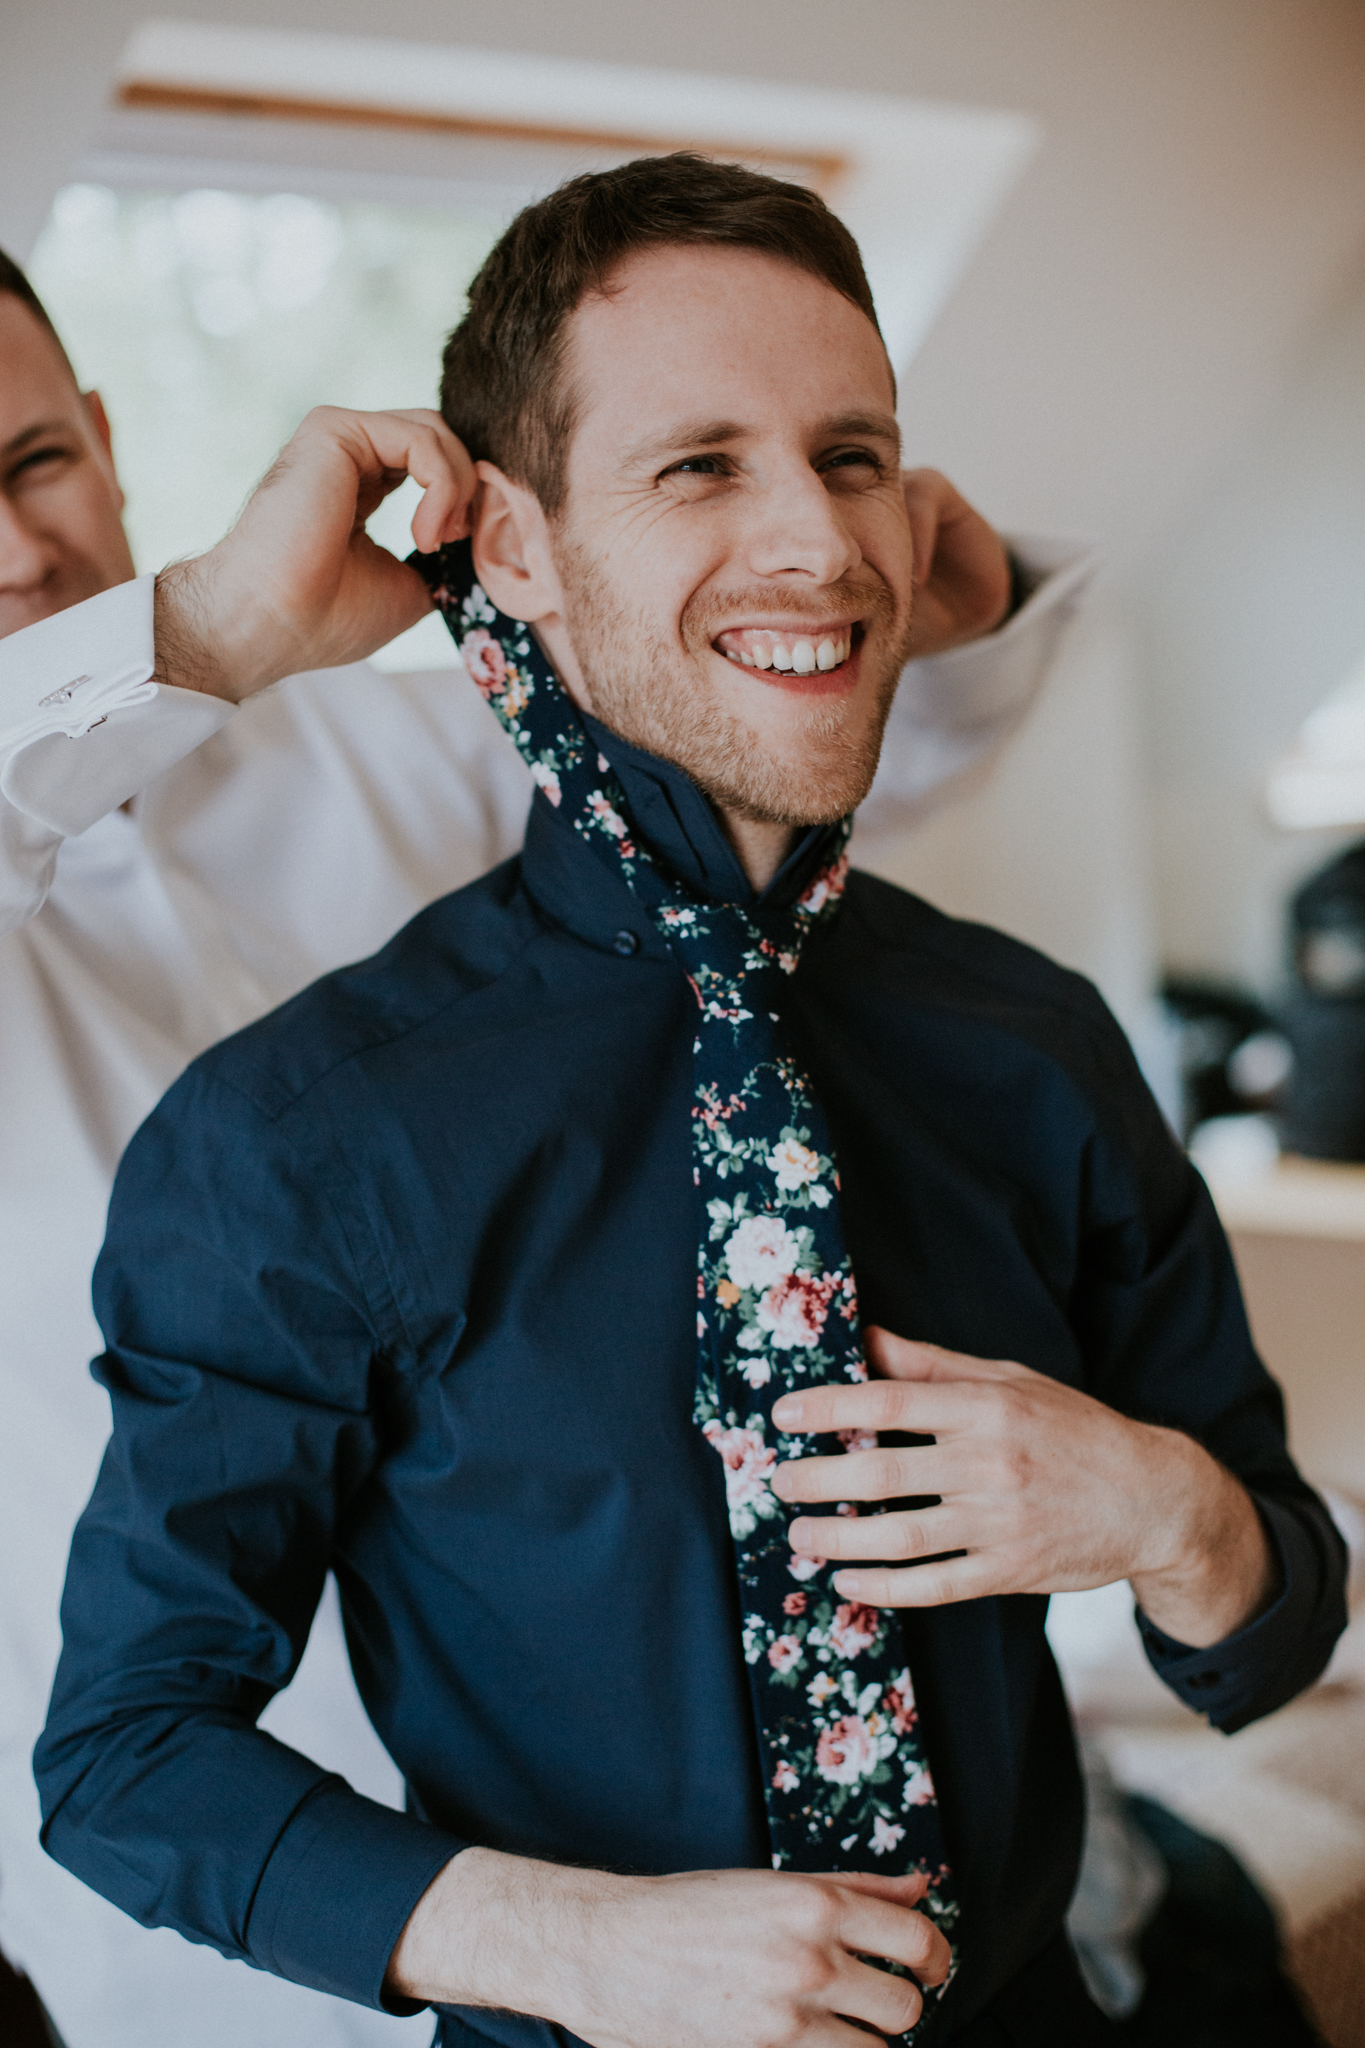 The groom is getting ready and wearing the colourful, alternative tie